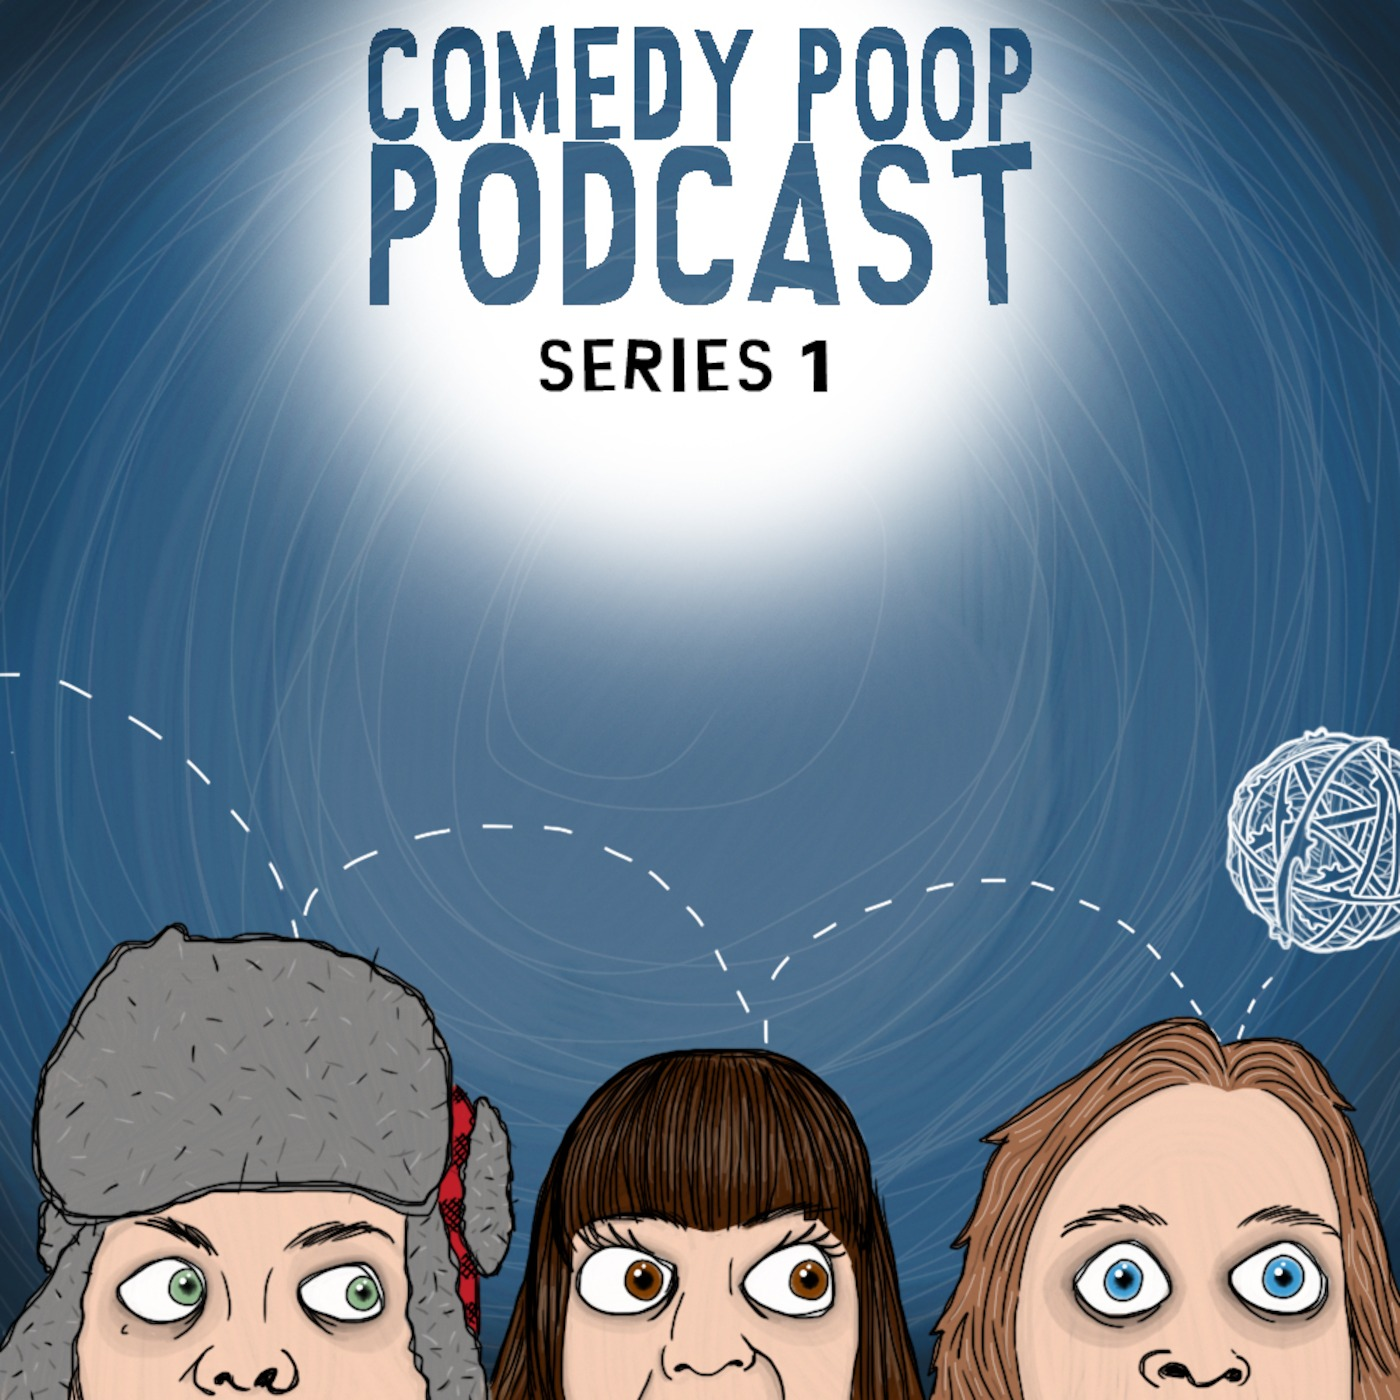 Comedy Poop Podcast - Series 1